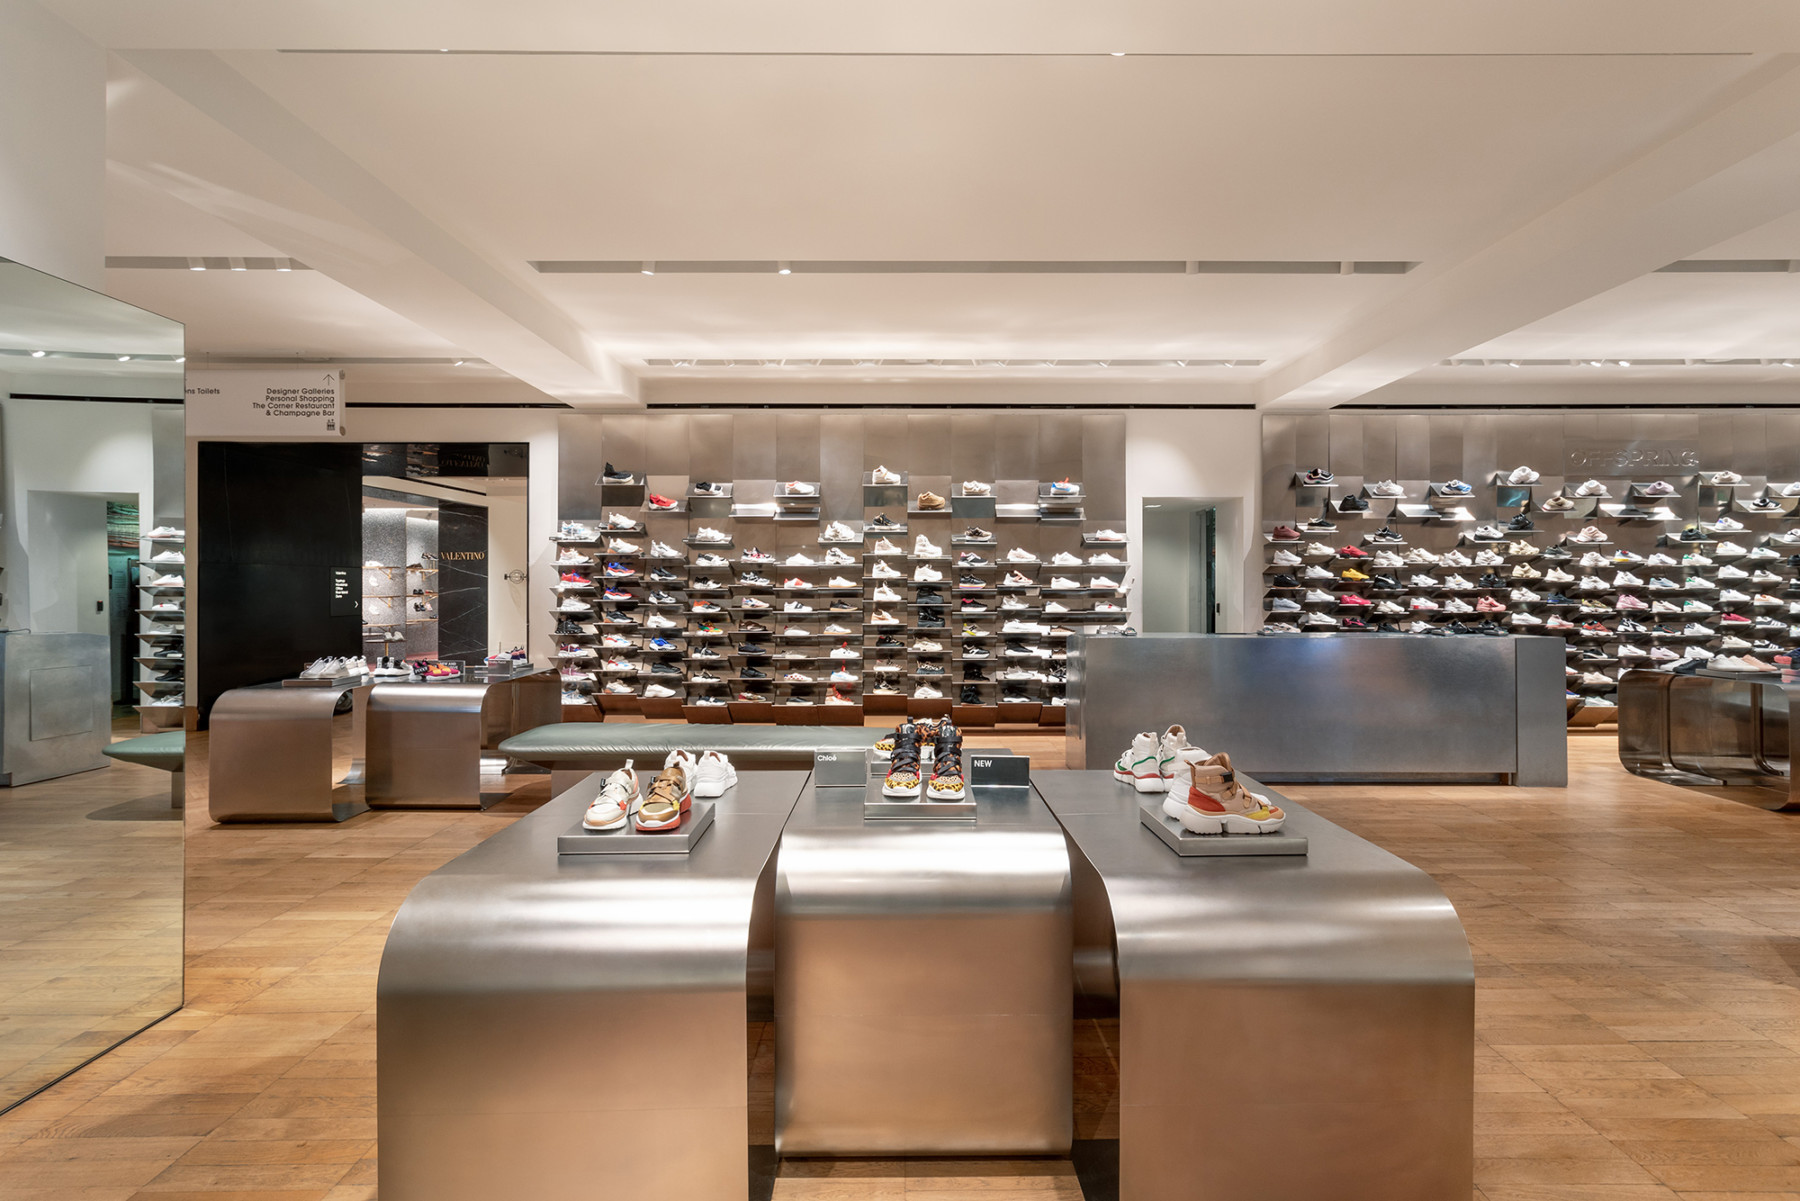 jamie-fobert-architects-selfridges-shoe-galleries-luxury-retail-concept-gallery-design-olivier-hess-photos-sneaker-wall3